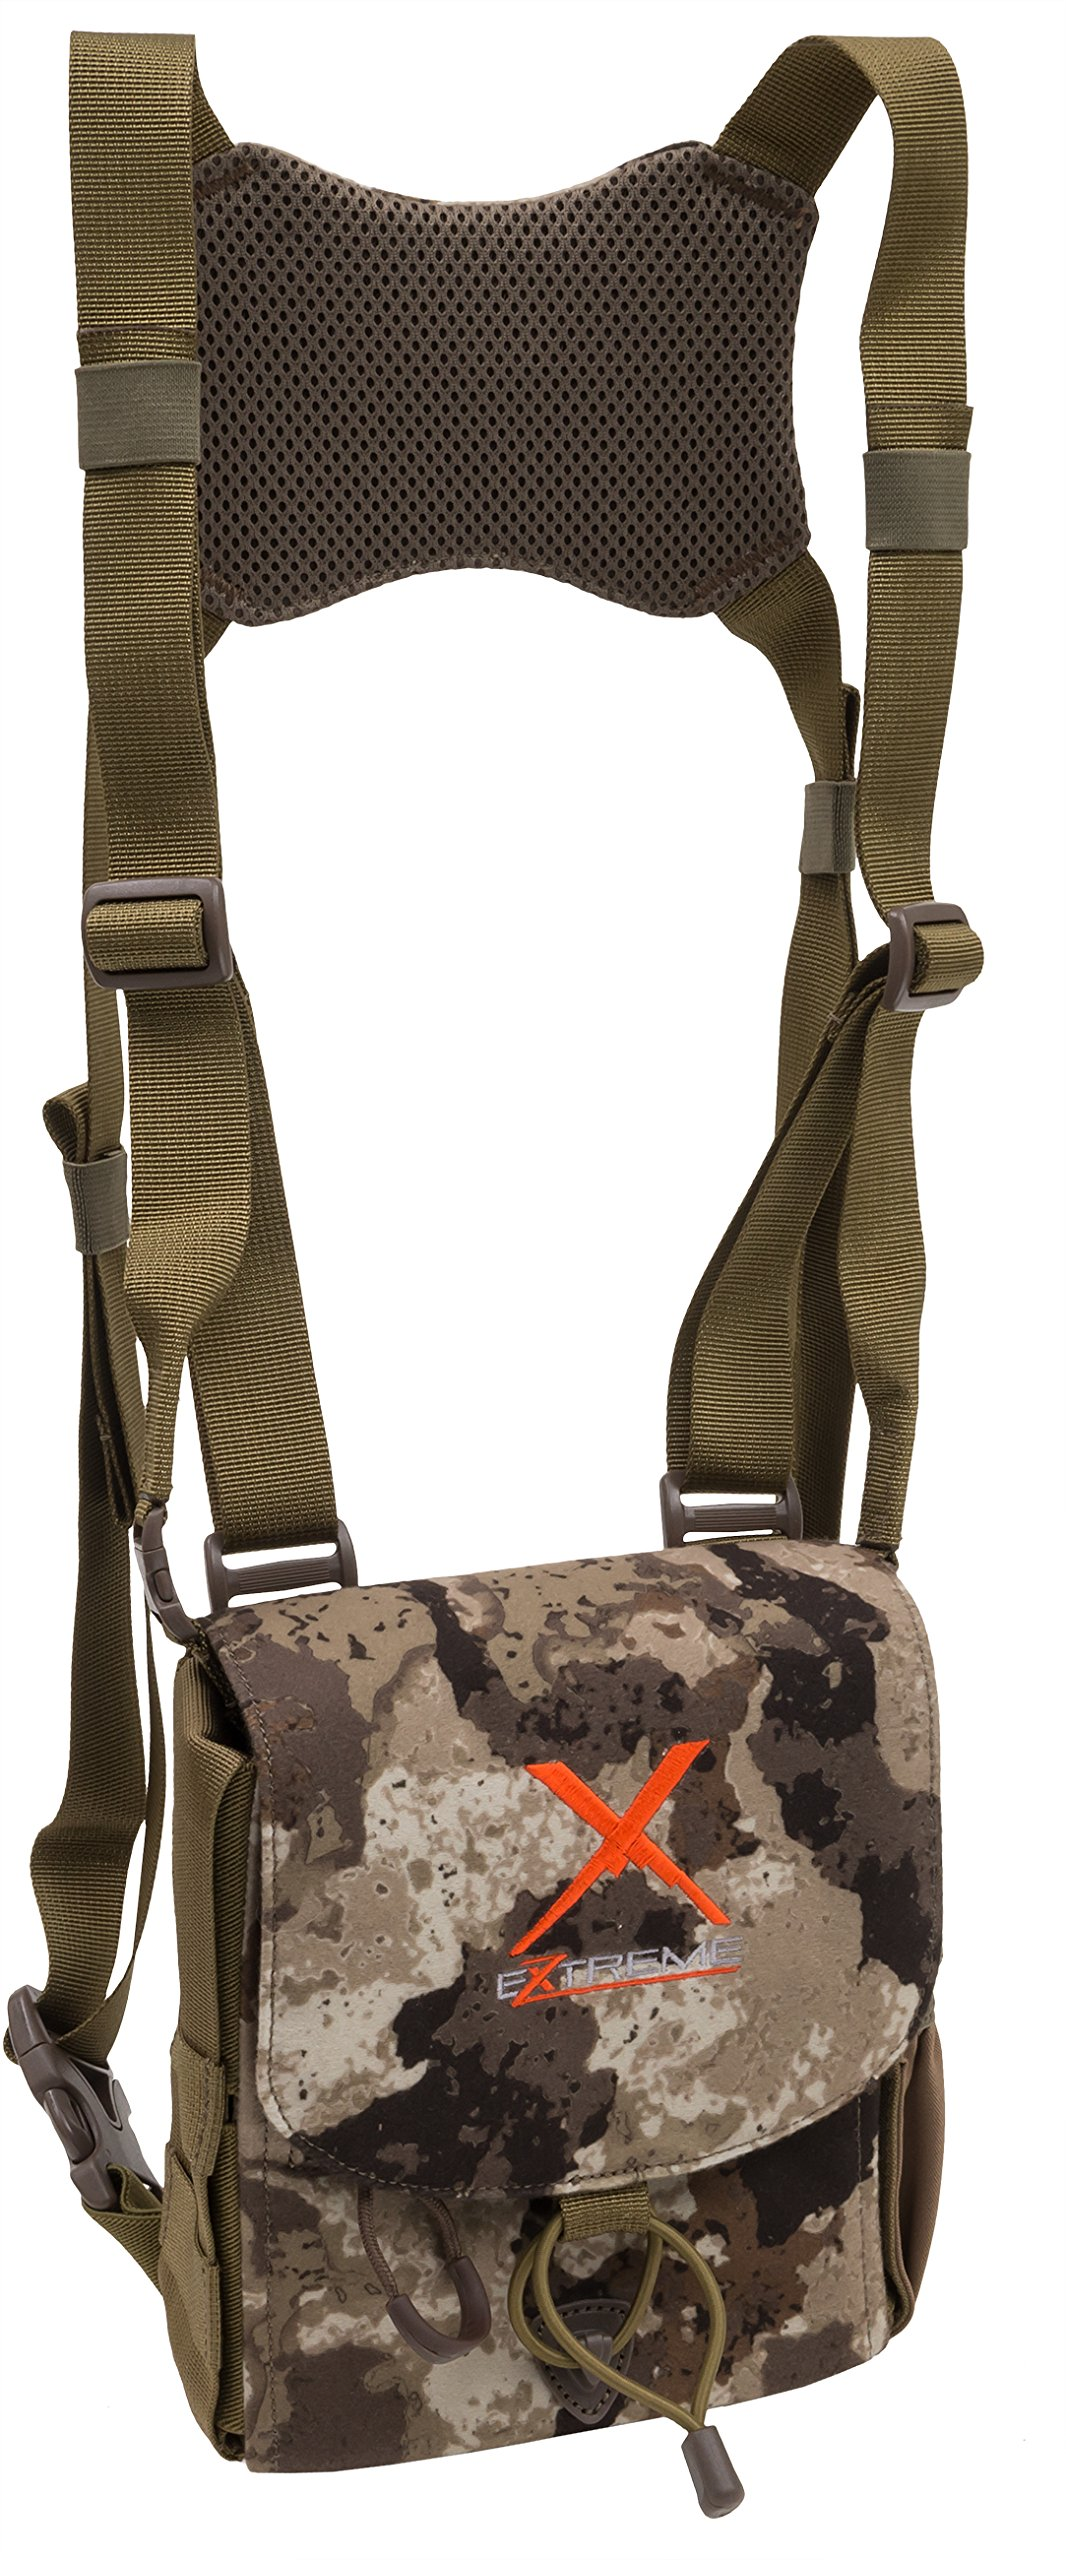 ALPS OutdoorZ Extreme Bino Harness X, Cervidae by ALPS OutdoorZ (Image #1)